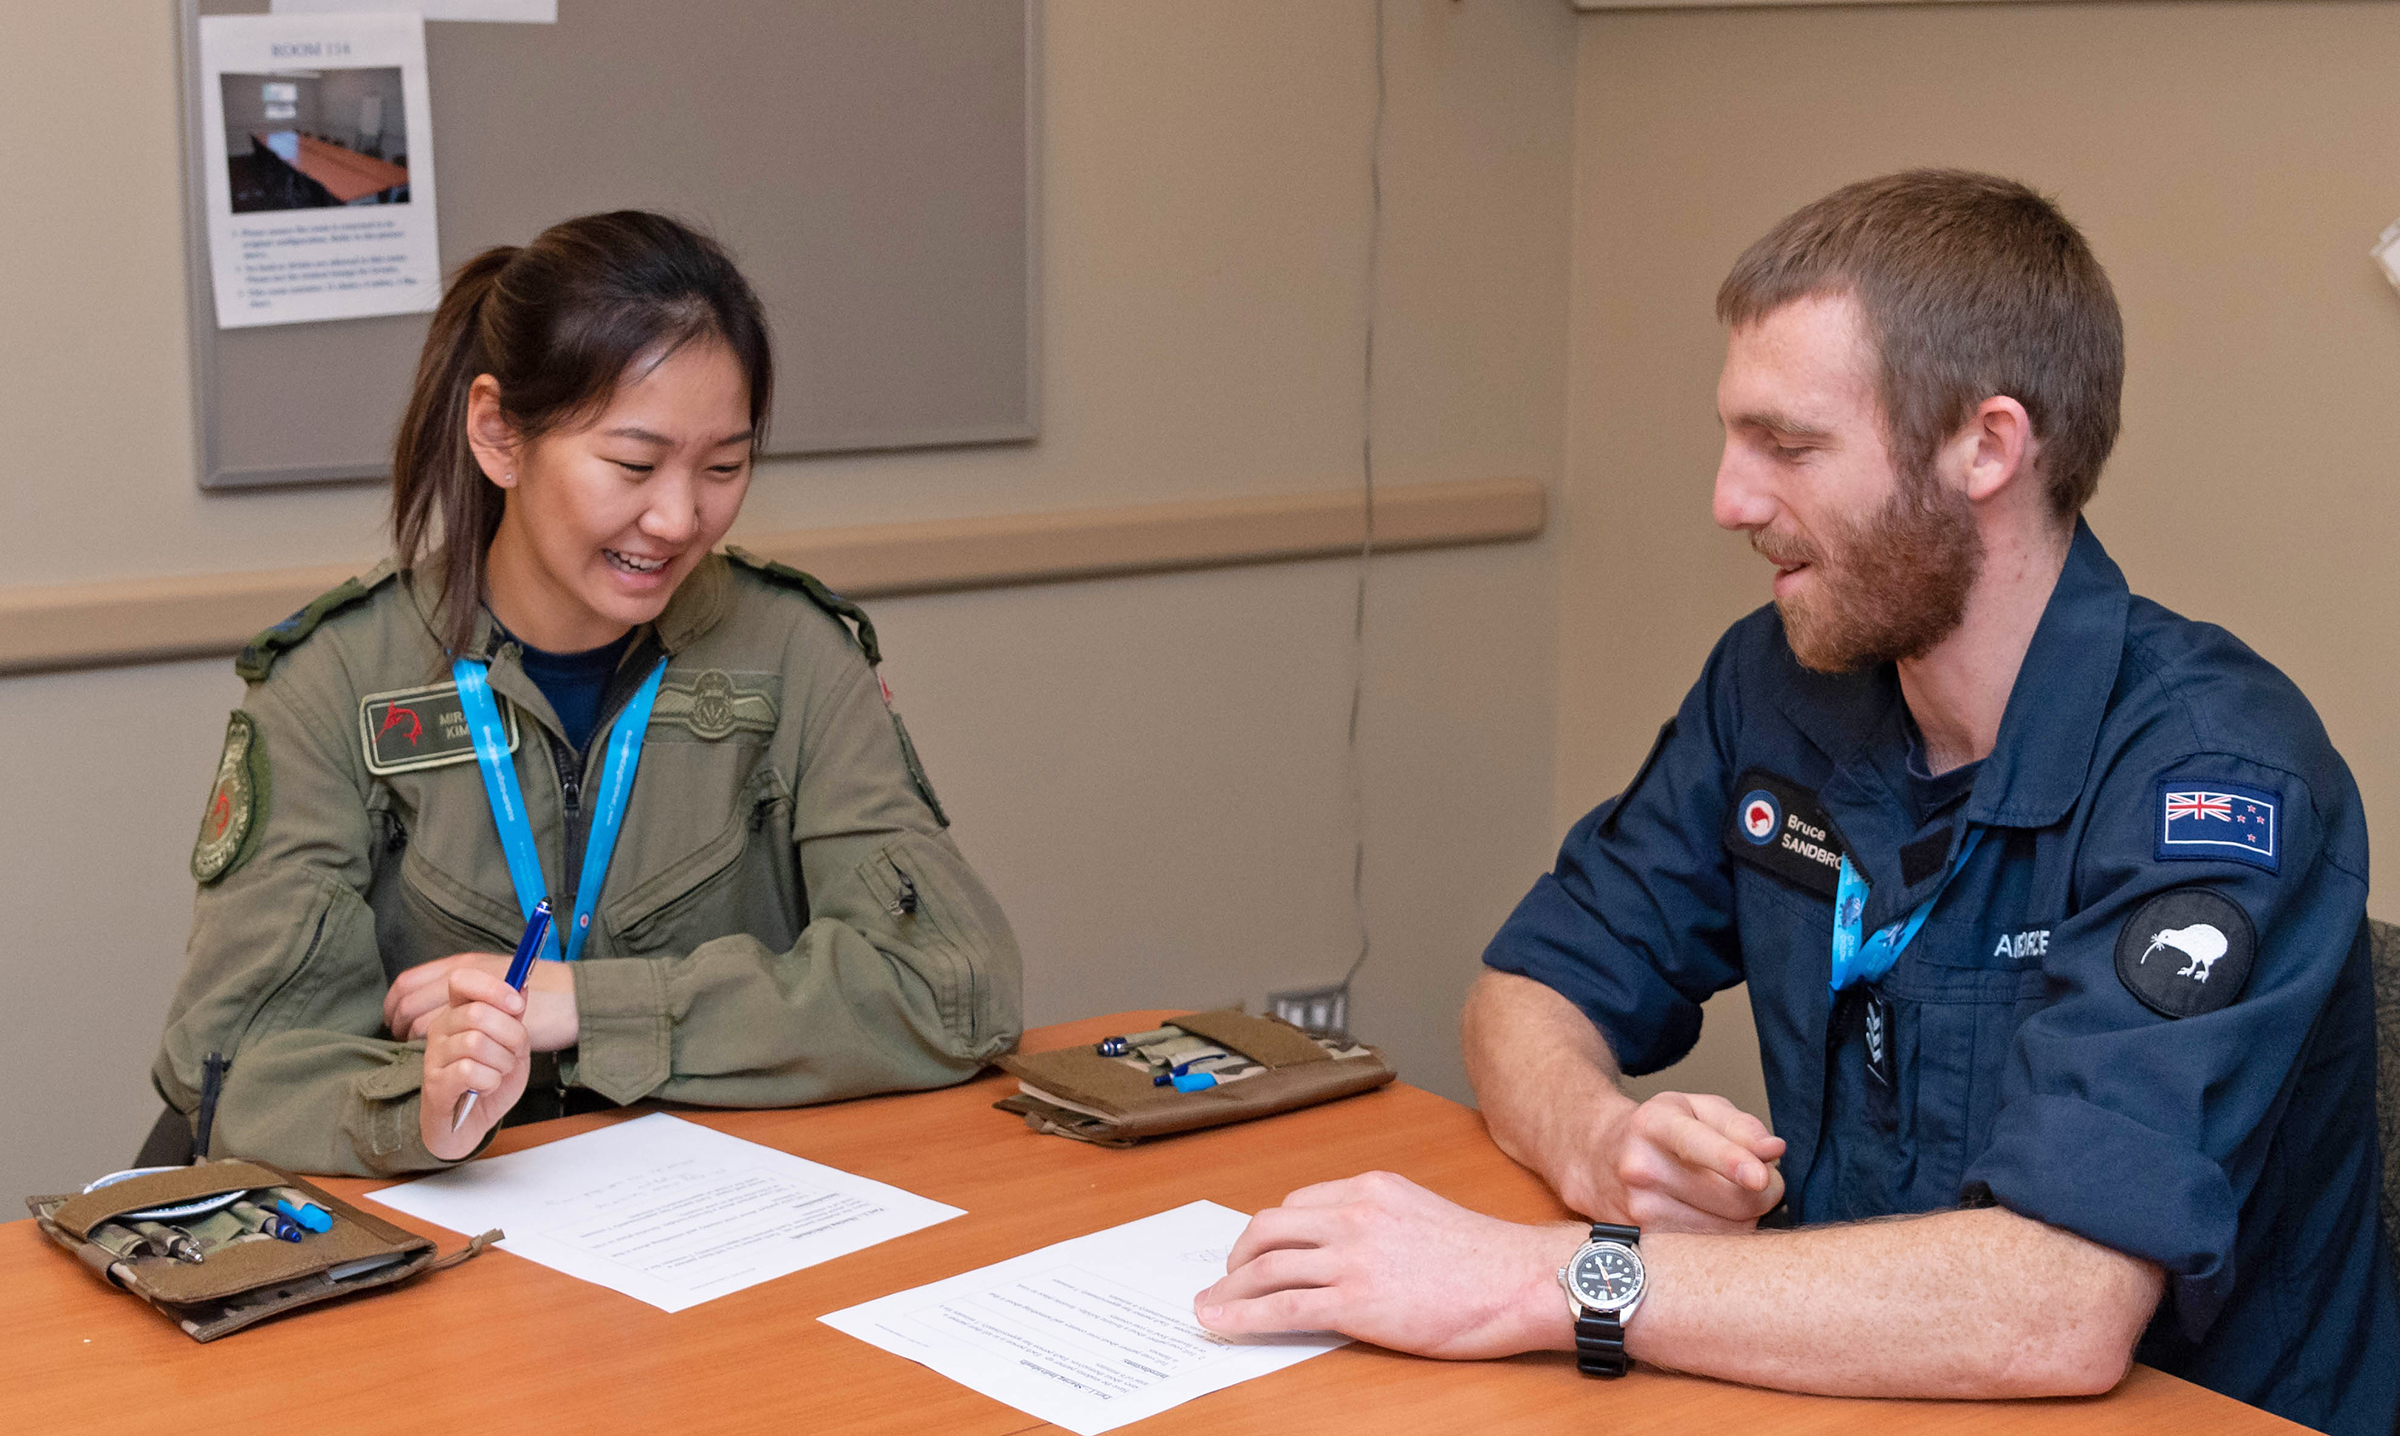 A member of the Royal Canadian Air Force (left) and a member of the Royal New Zealand Air Force work together during the Junior Enlisted Leadership Forum held at 17 Wing Winnipeg, Manitoba, from October 21 to 25, 2019. PHOTO: Corporal Brian Lindgren, WG2019-0525-008